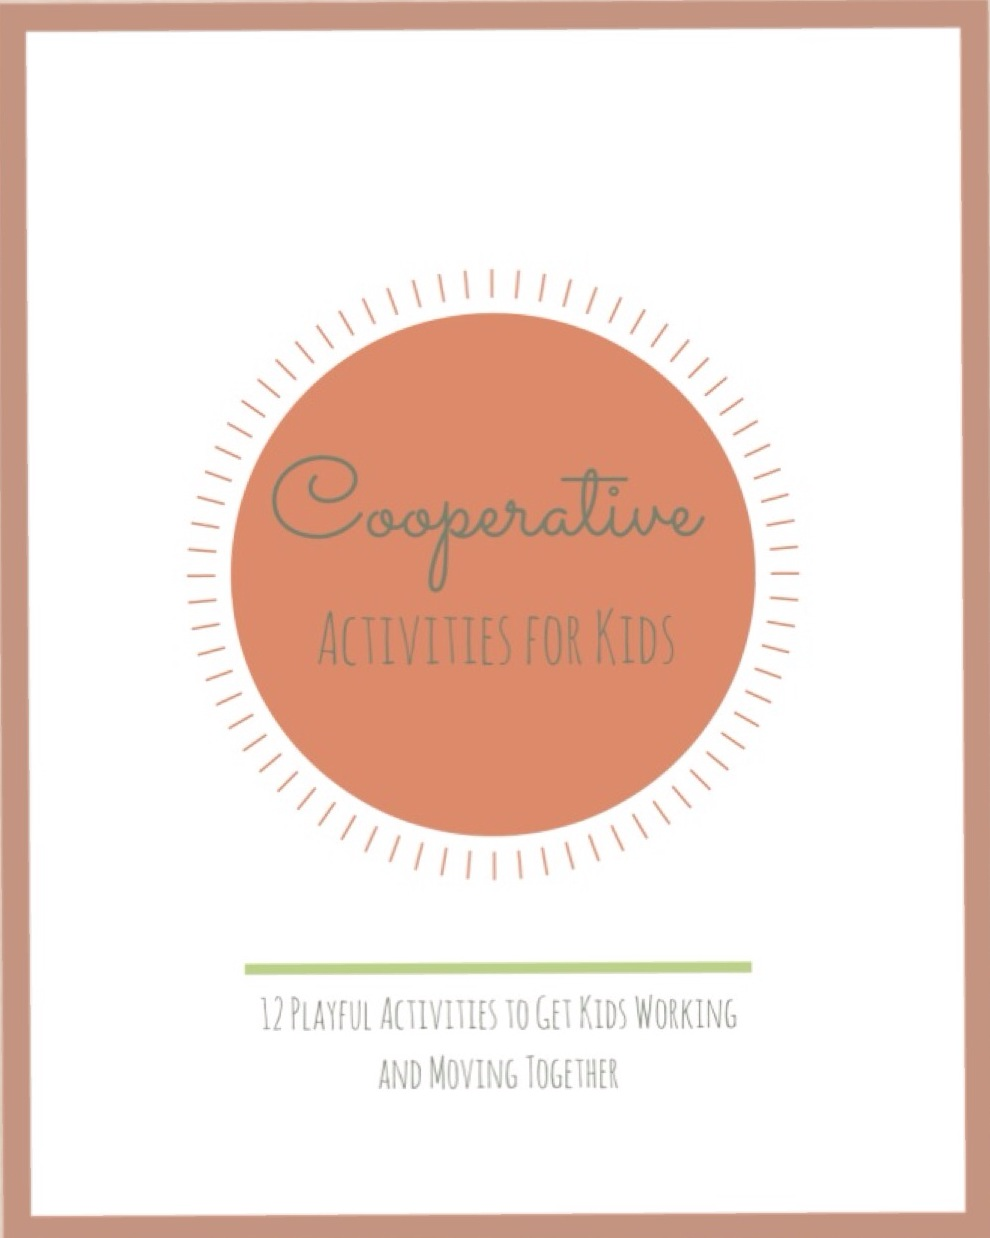 Cooperative Activities for Kids from www.YourTherapySource.com